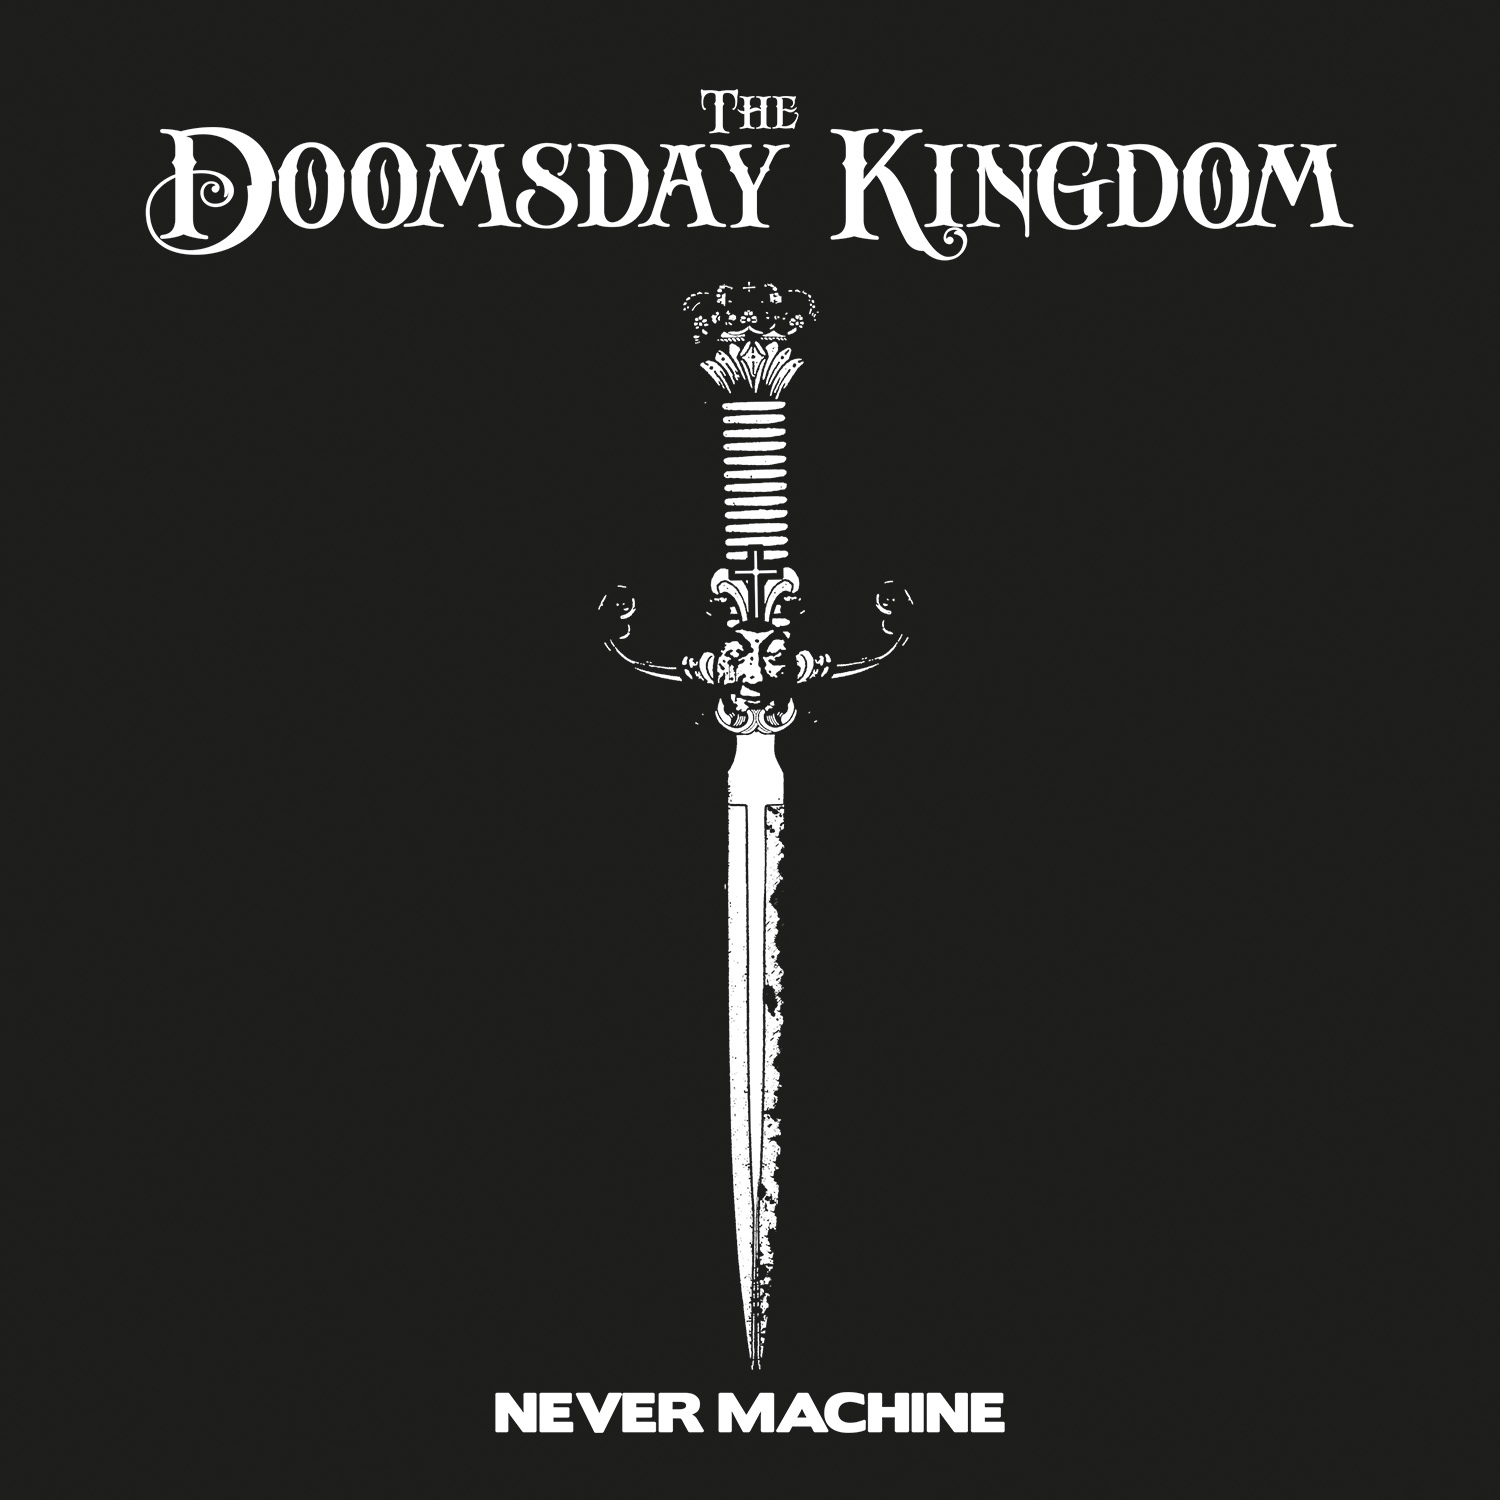 the-doomsday-kingdom-never-machine-artwork